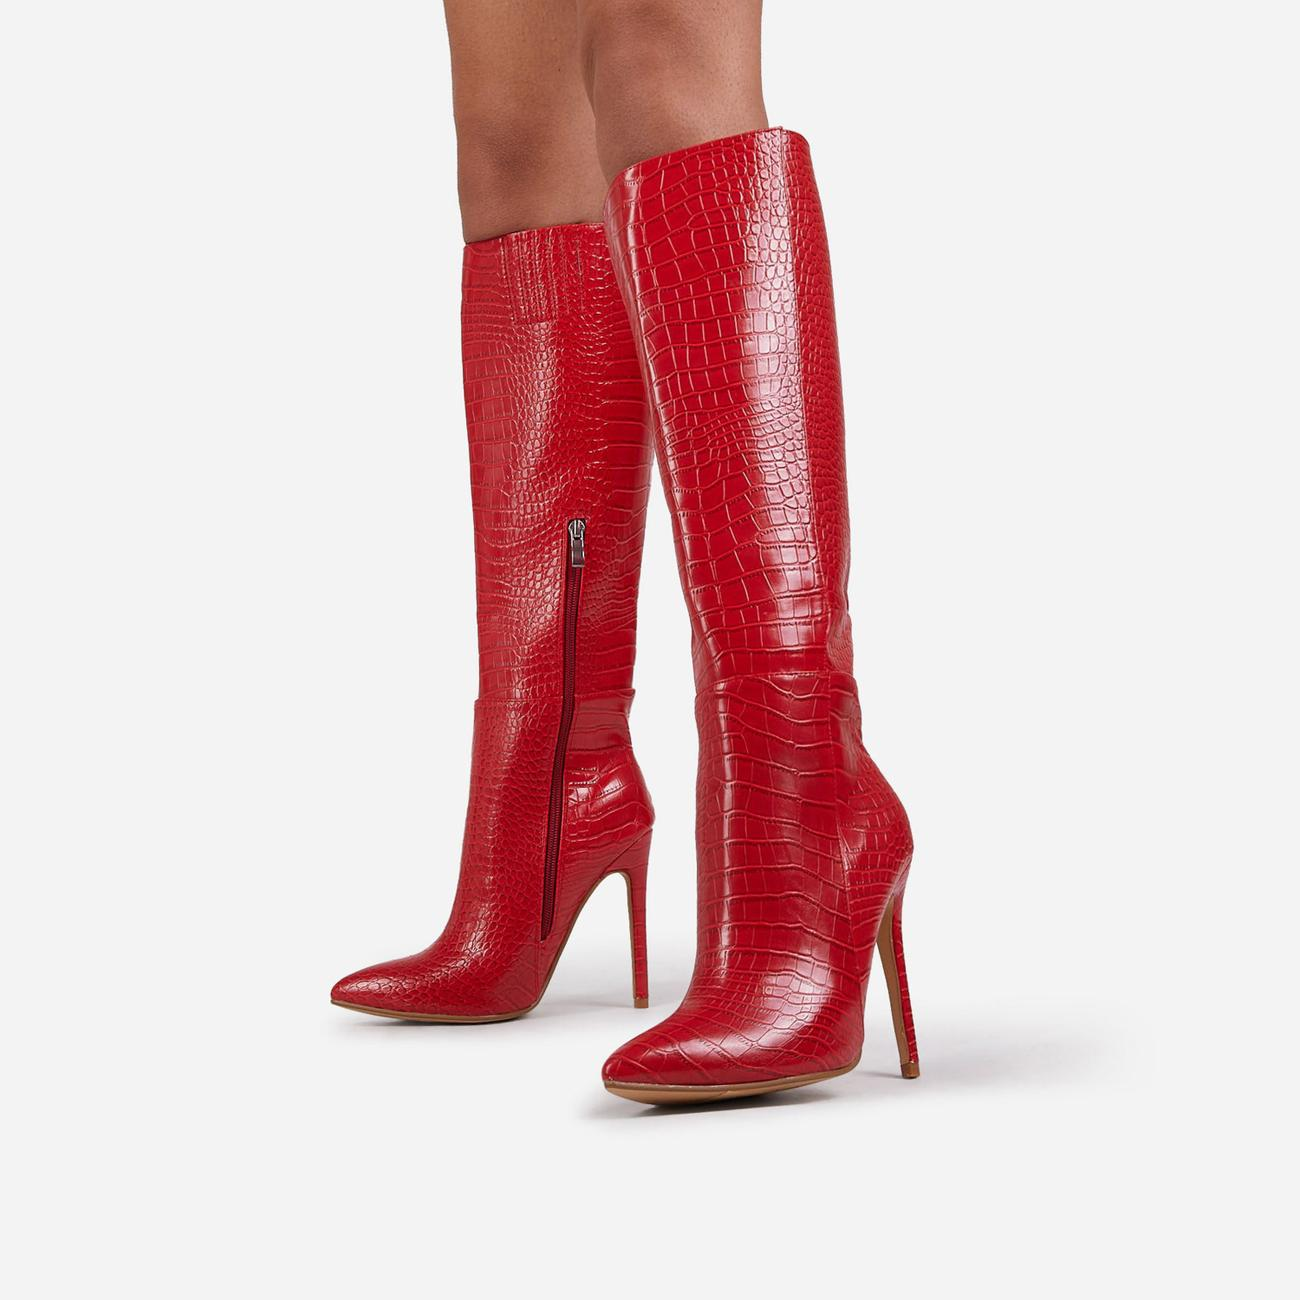 Rose Knee High Long Boot In Red Croc Print Faux Leather Image 2